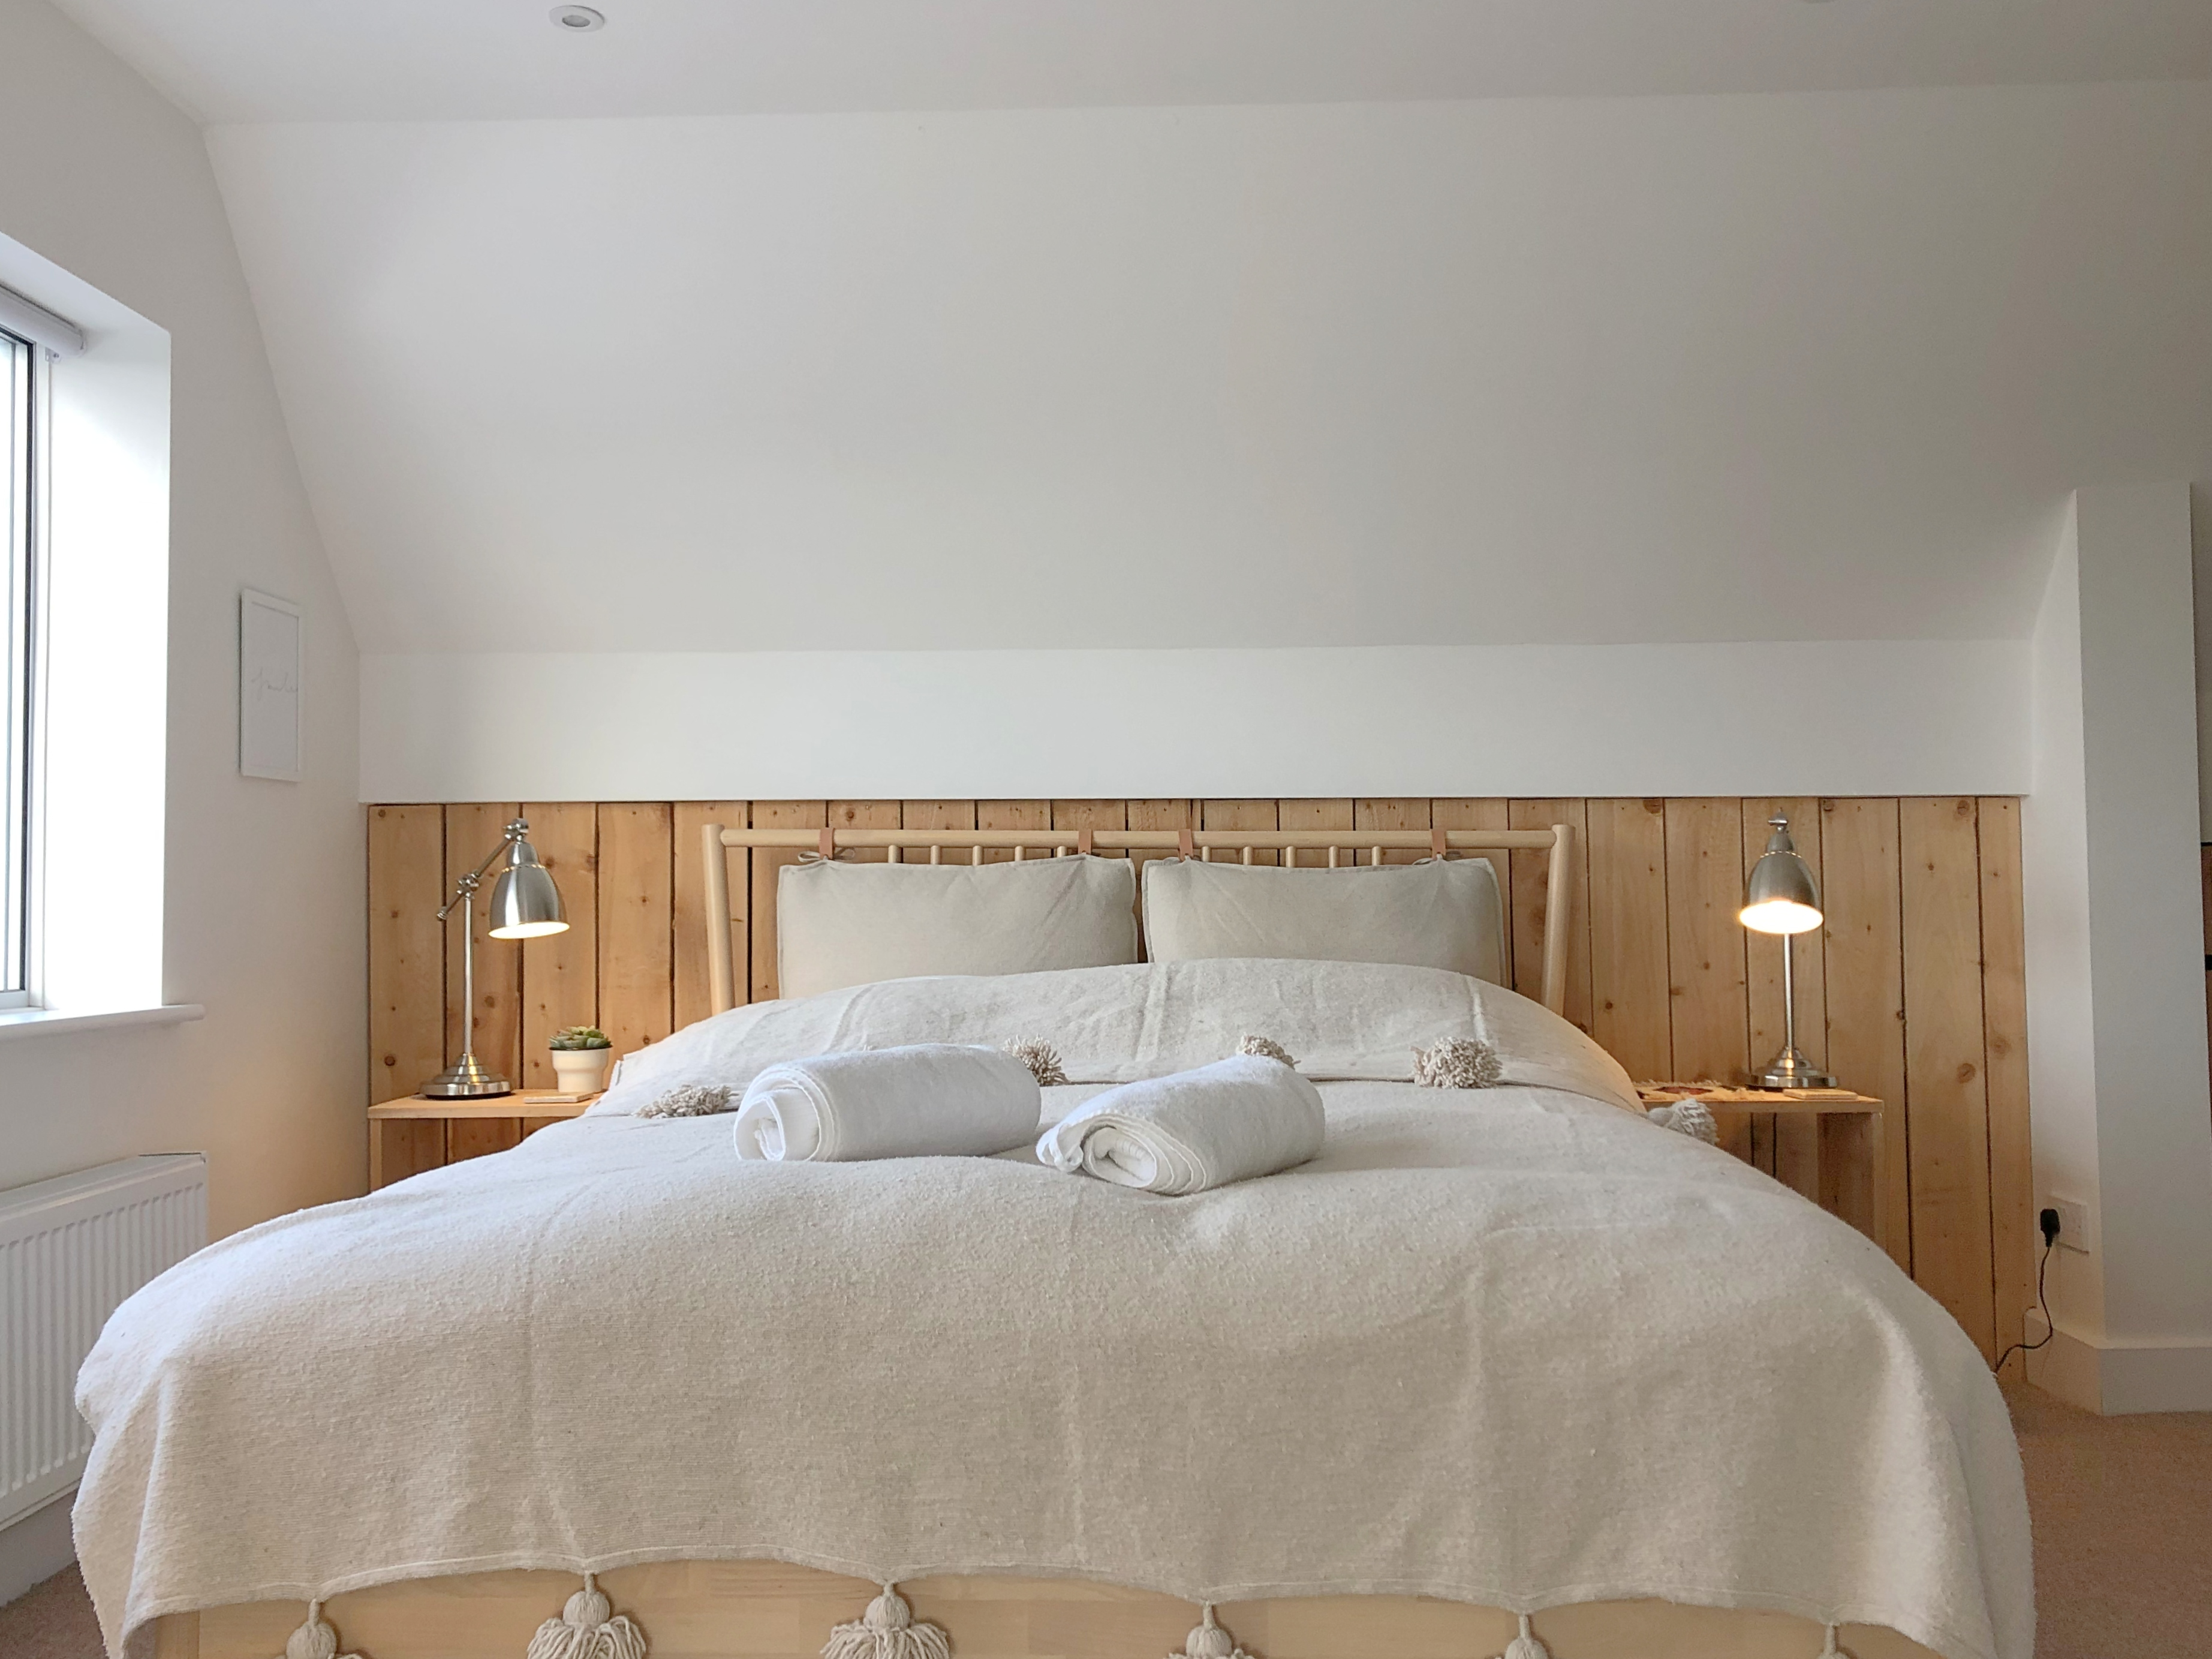 Master Bedroom - Kingsize Bed